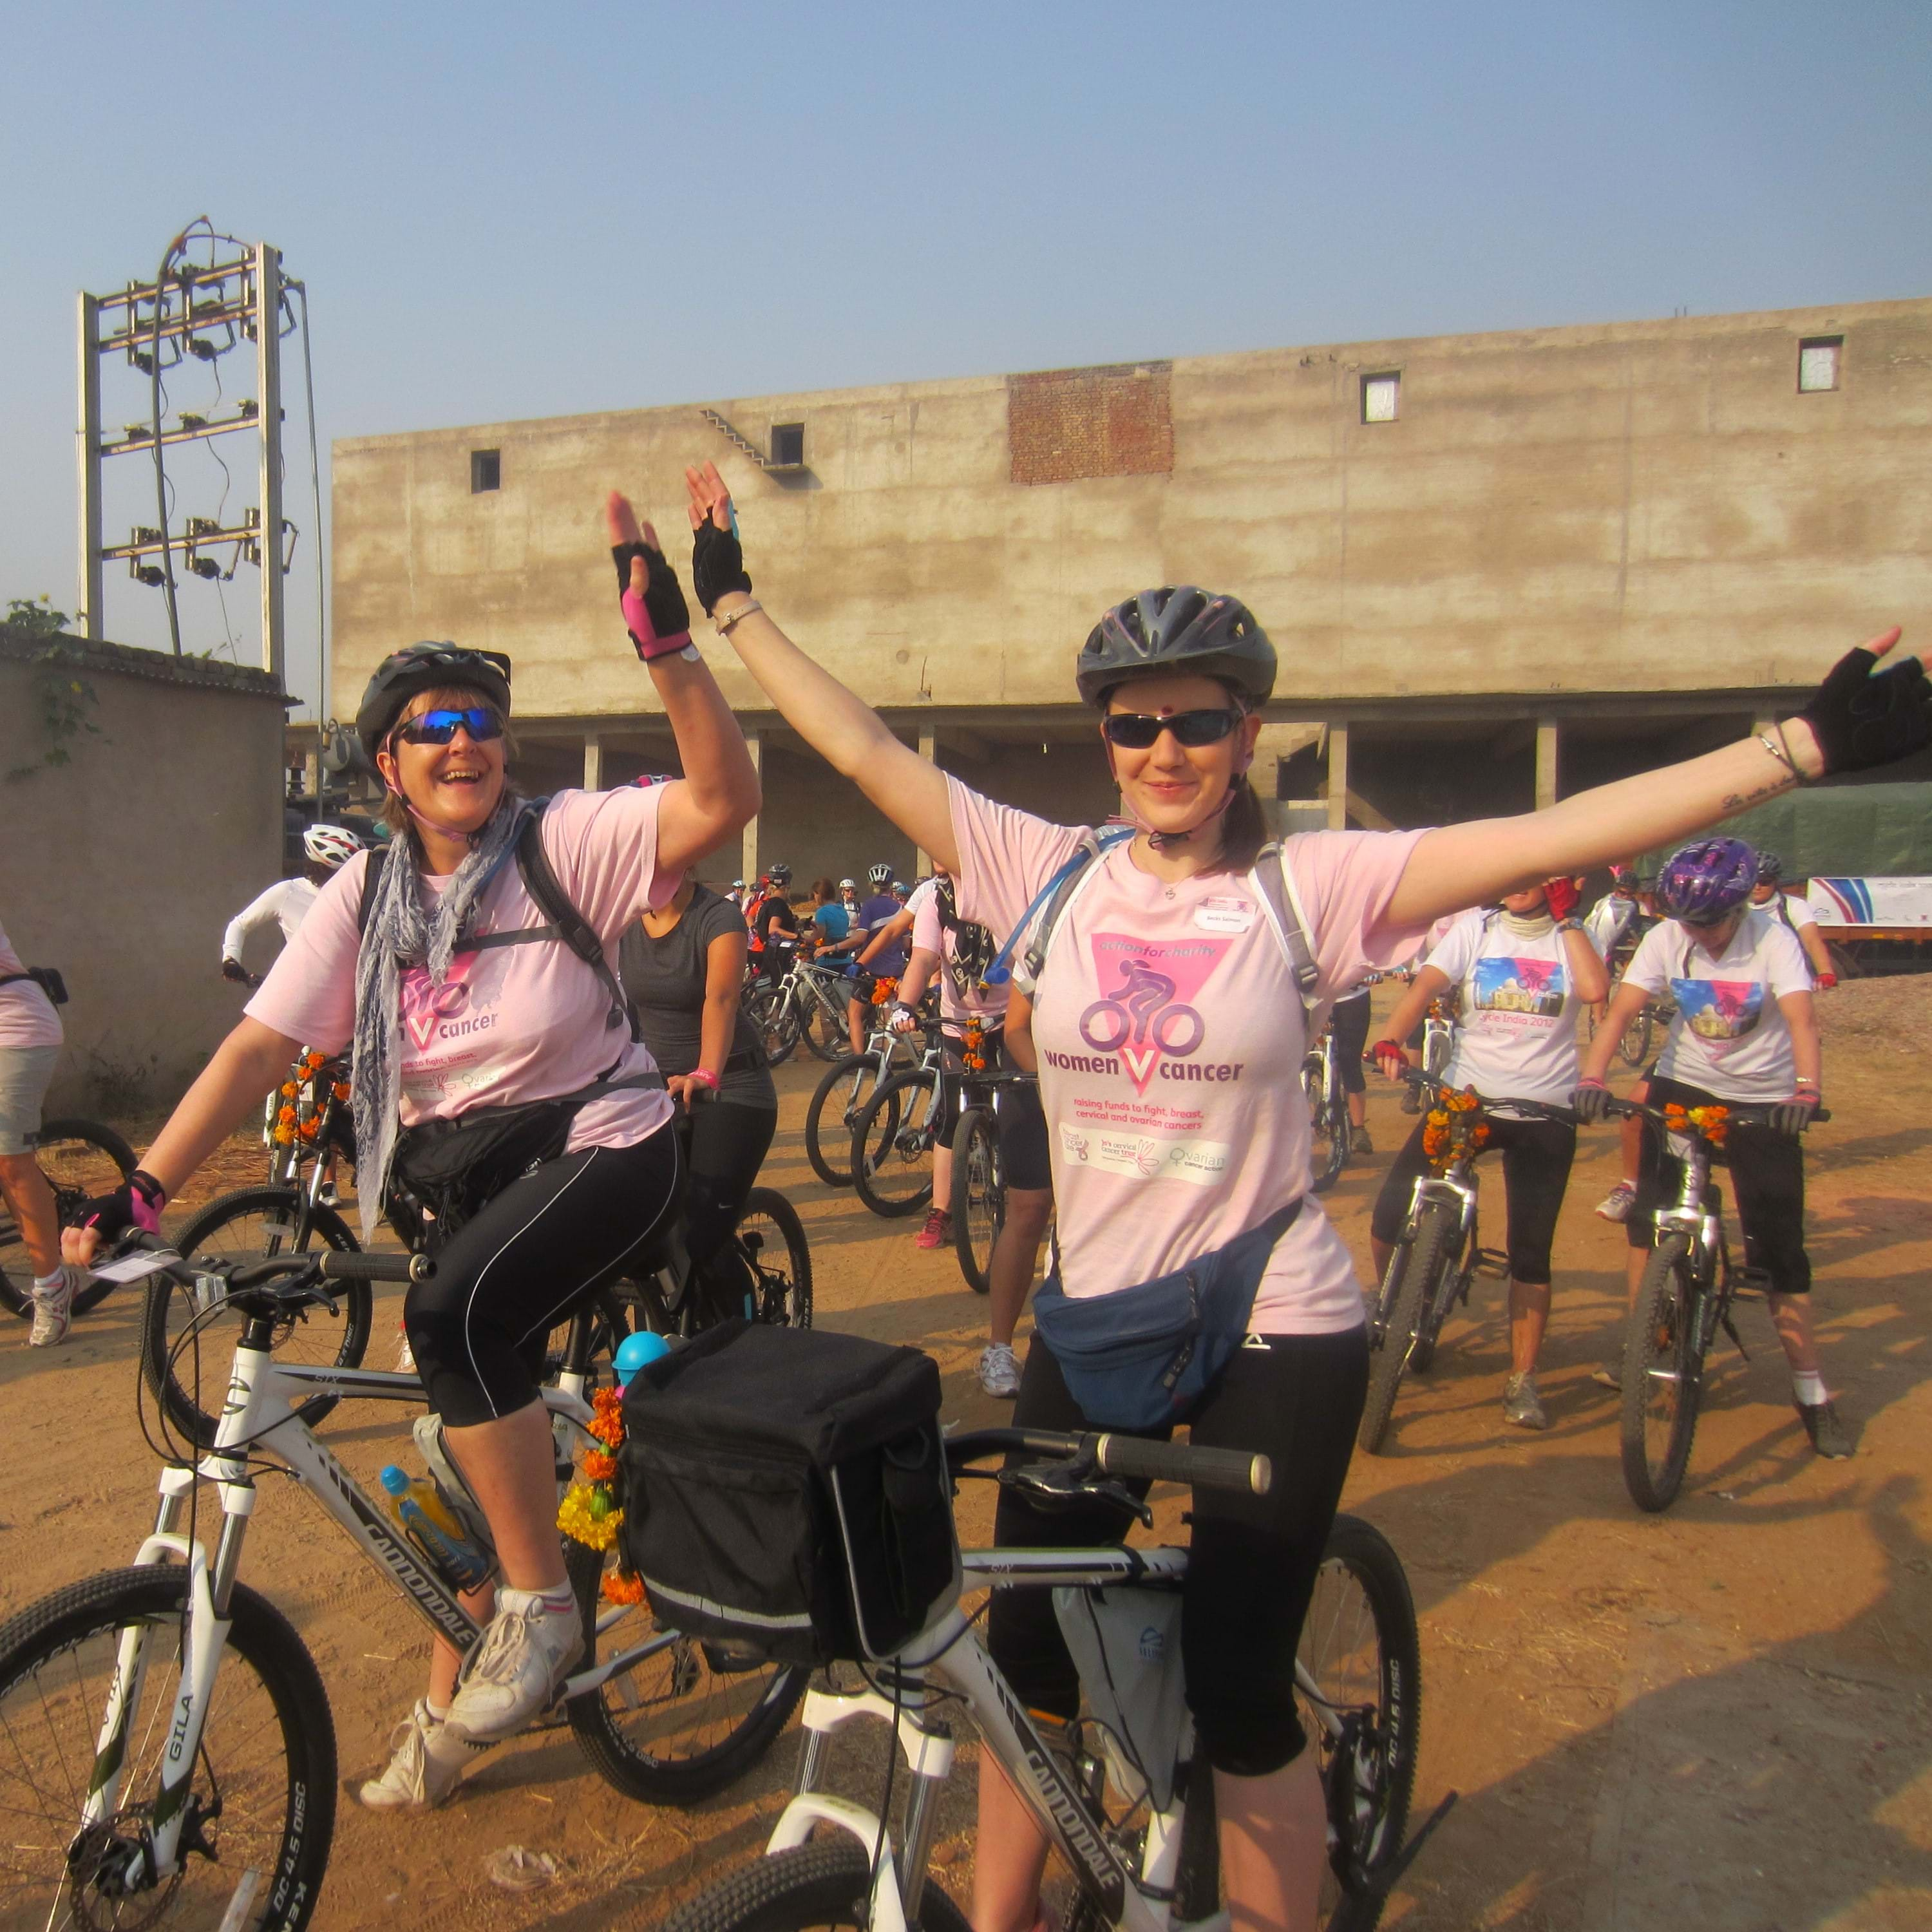 cycling worldwide for charity against cancer